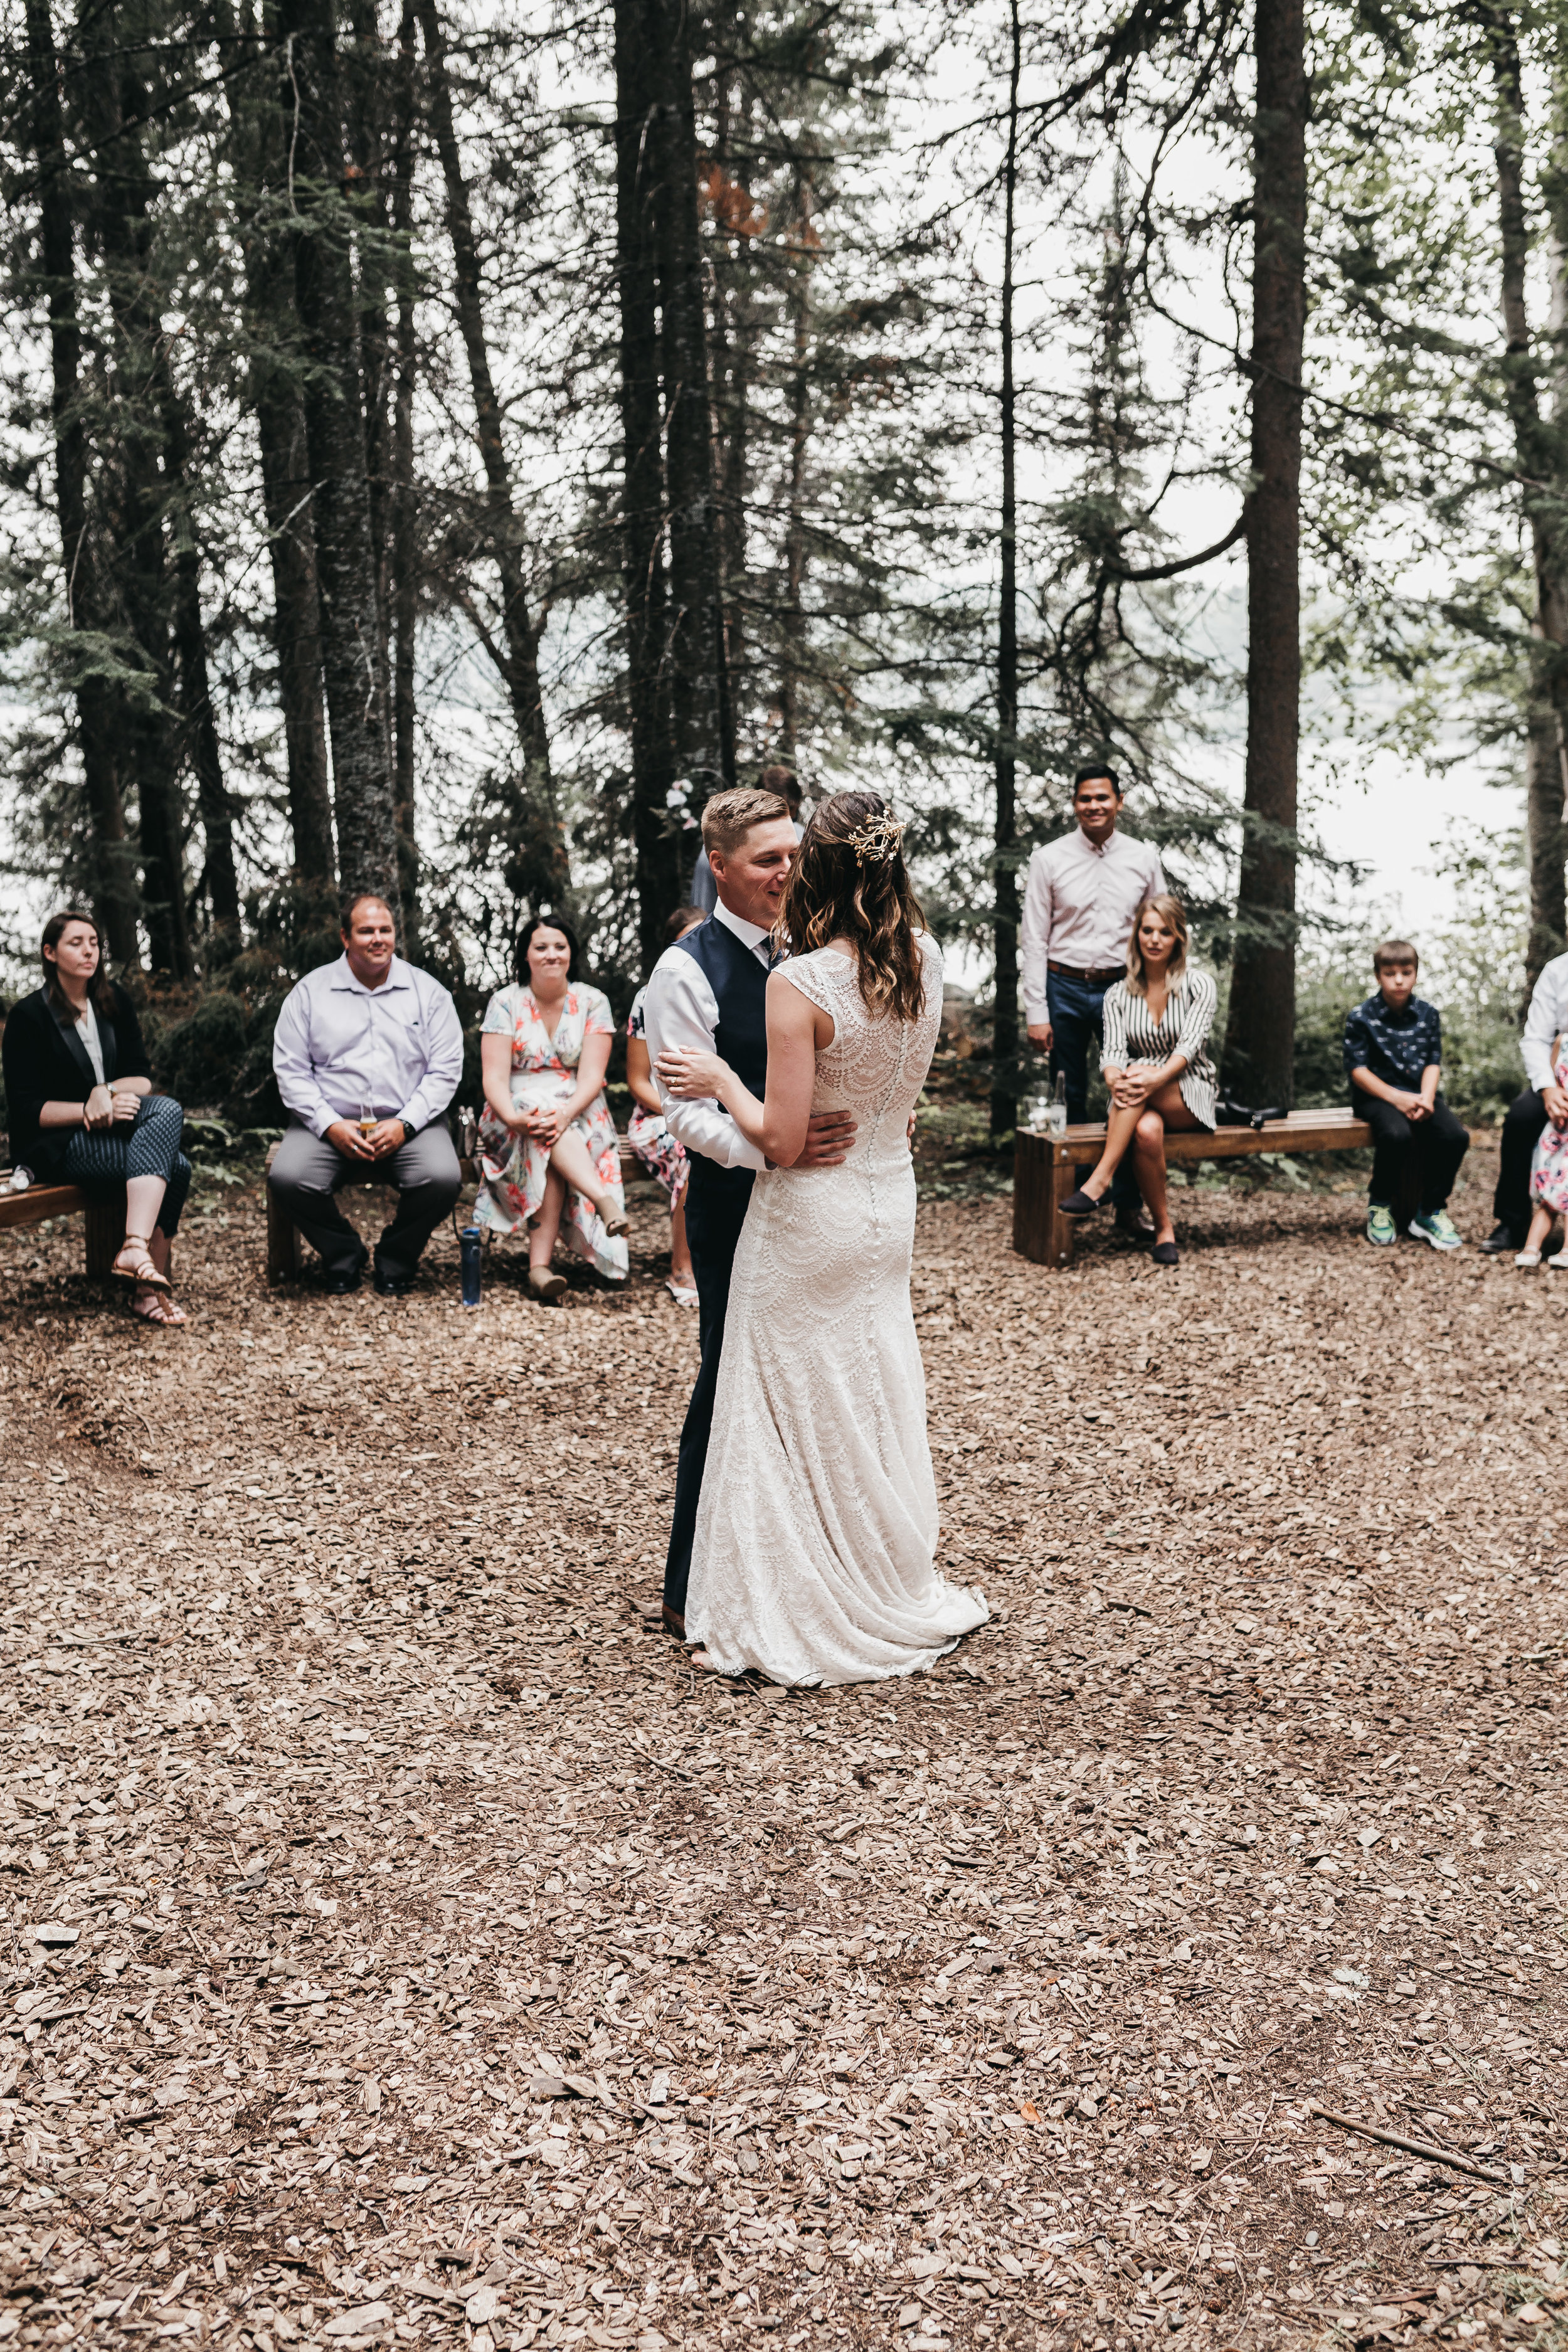 SimplePerfectionsPhotography.Mike+Courtney-449.jpg